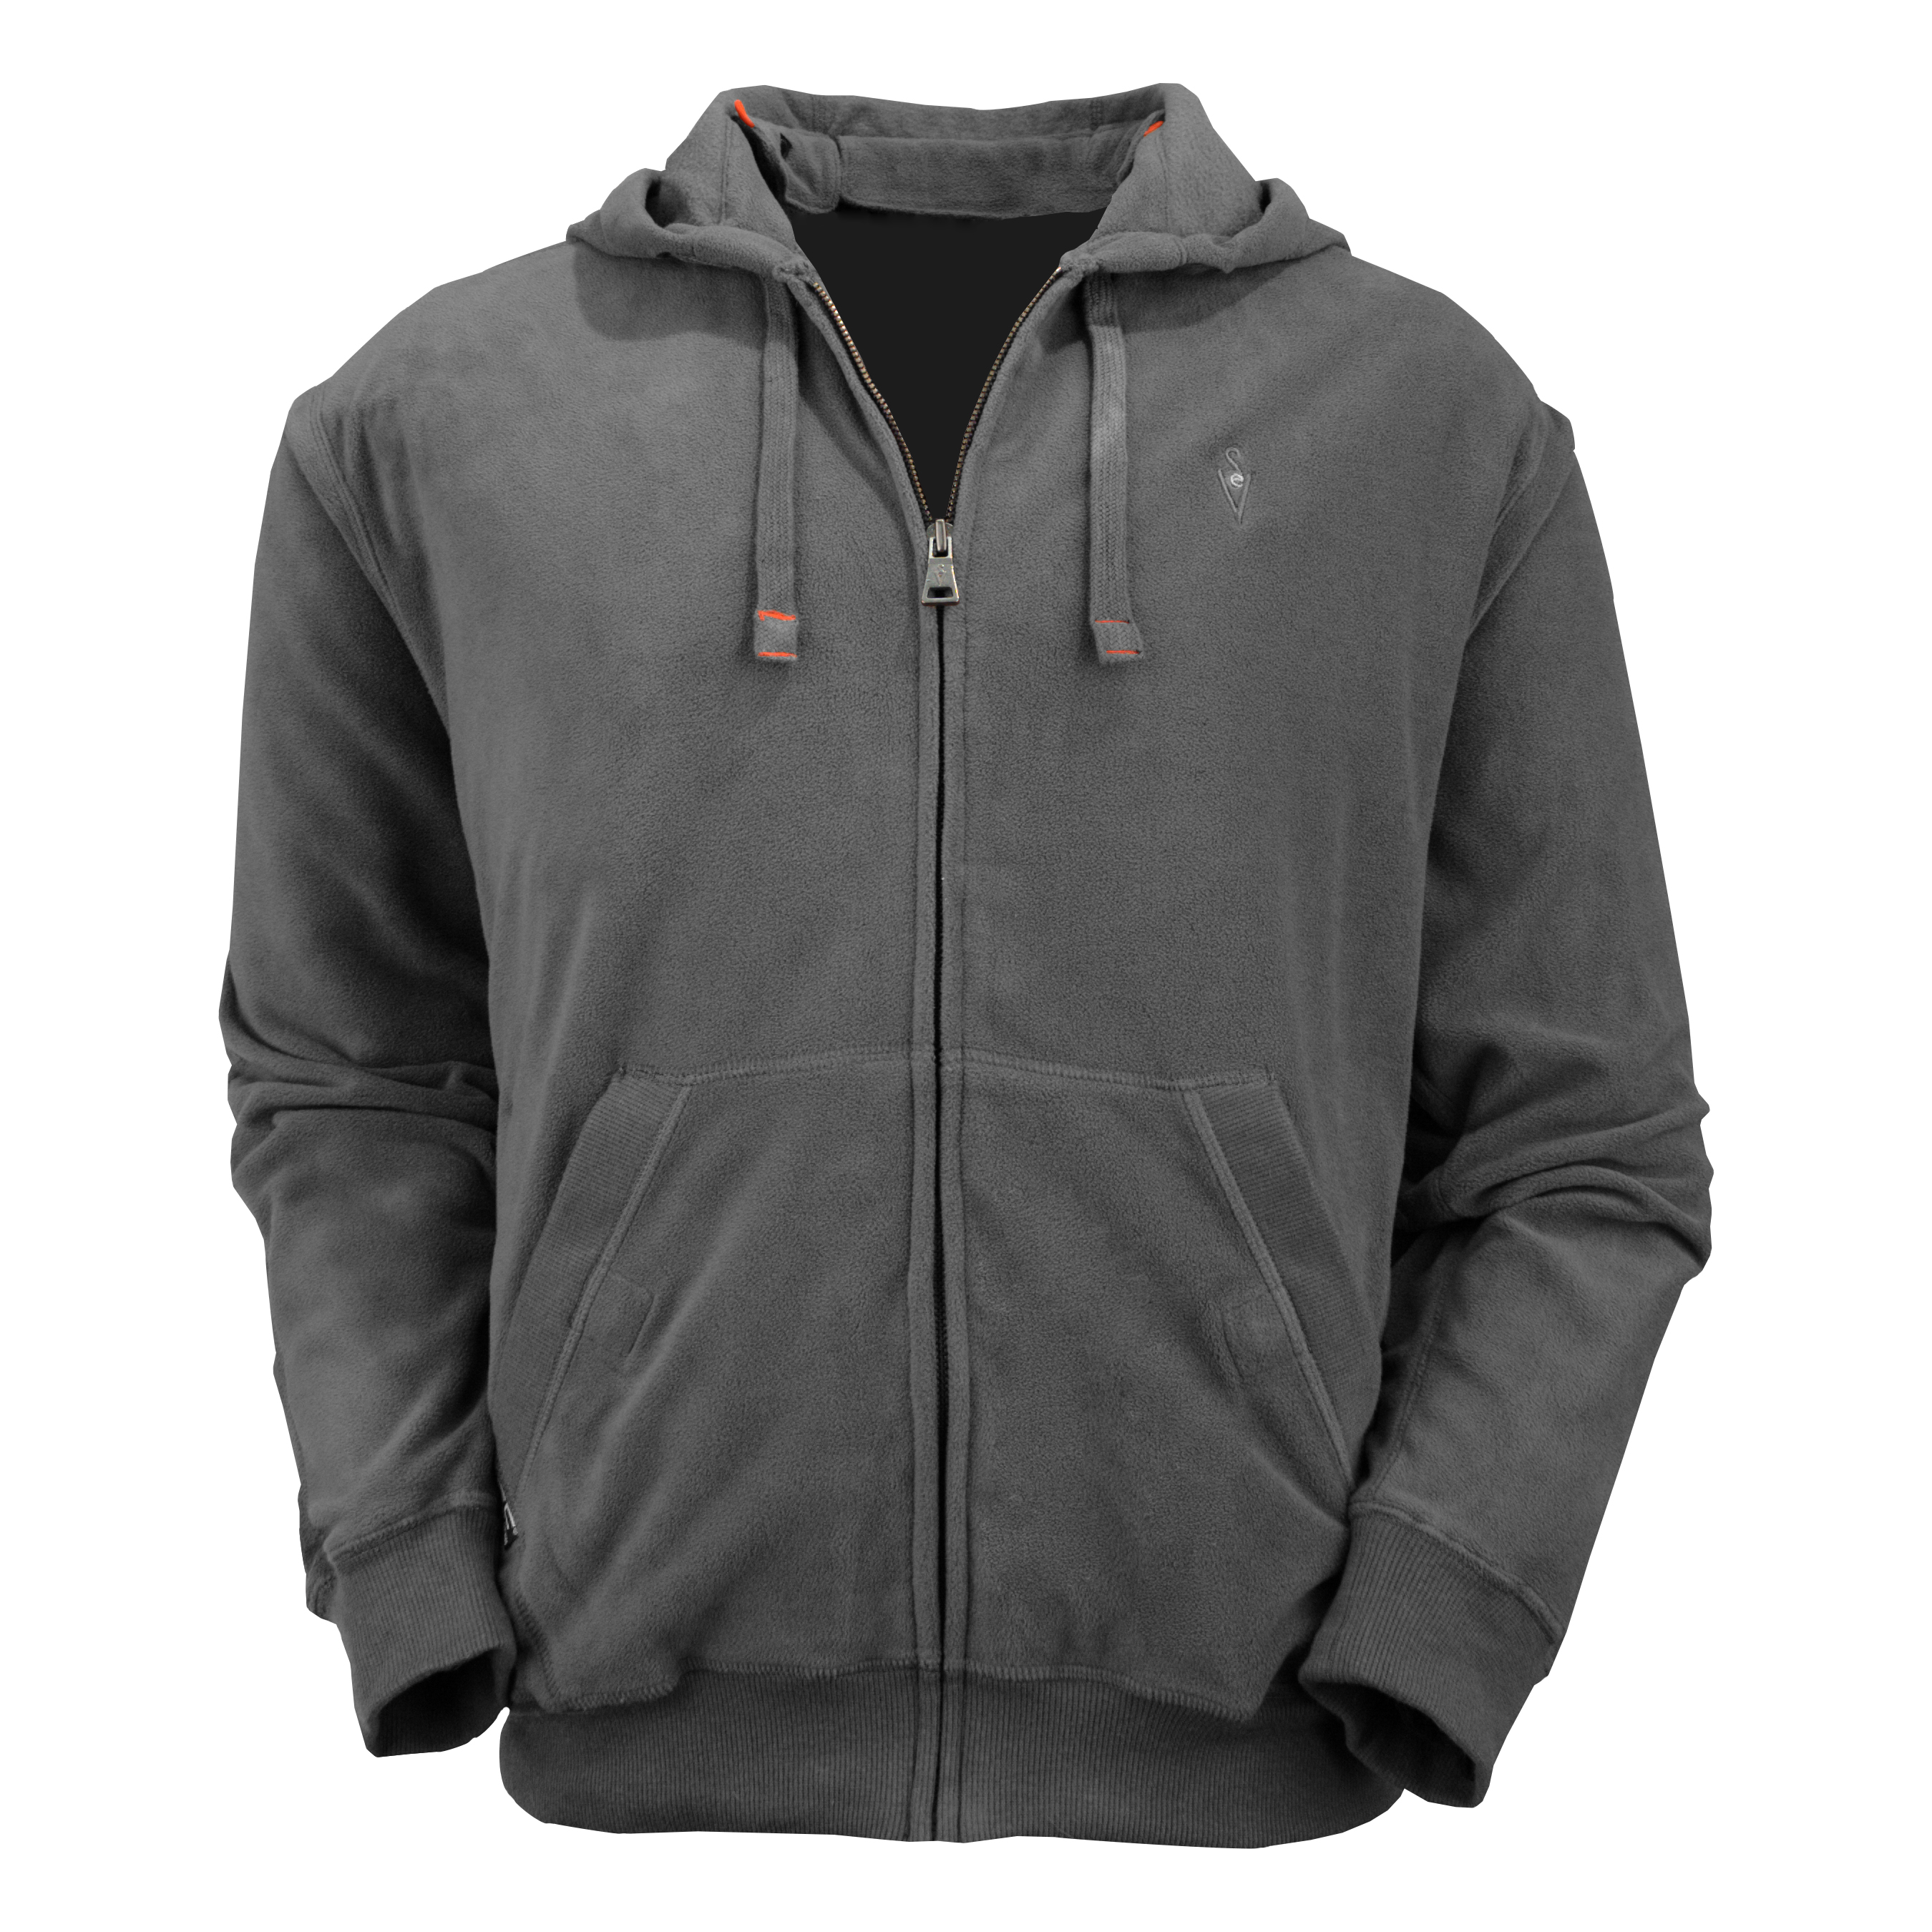 e7c2d751ff2a SCOTTEVEST Hoodie  What Has It Got In Its Pocketses